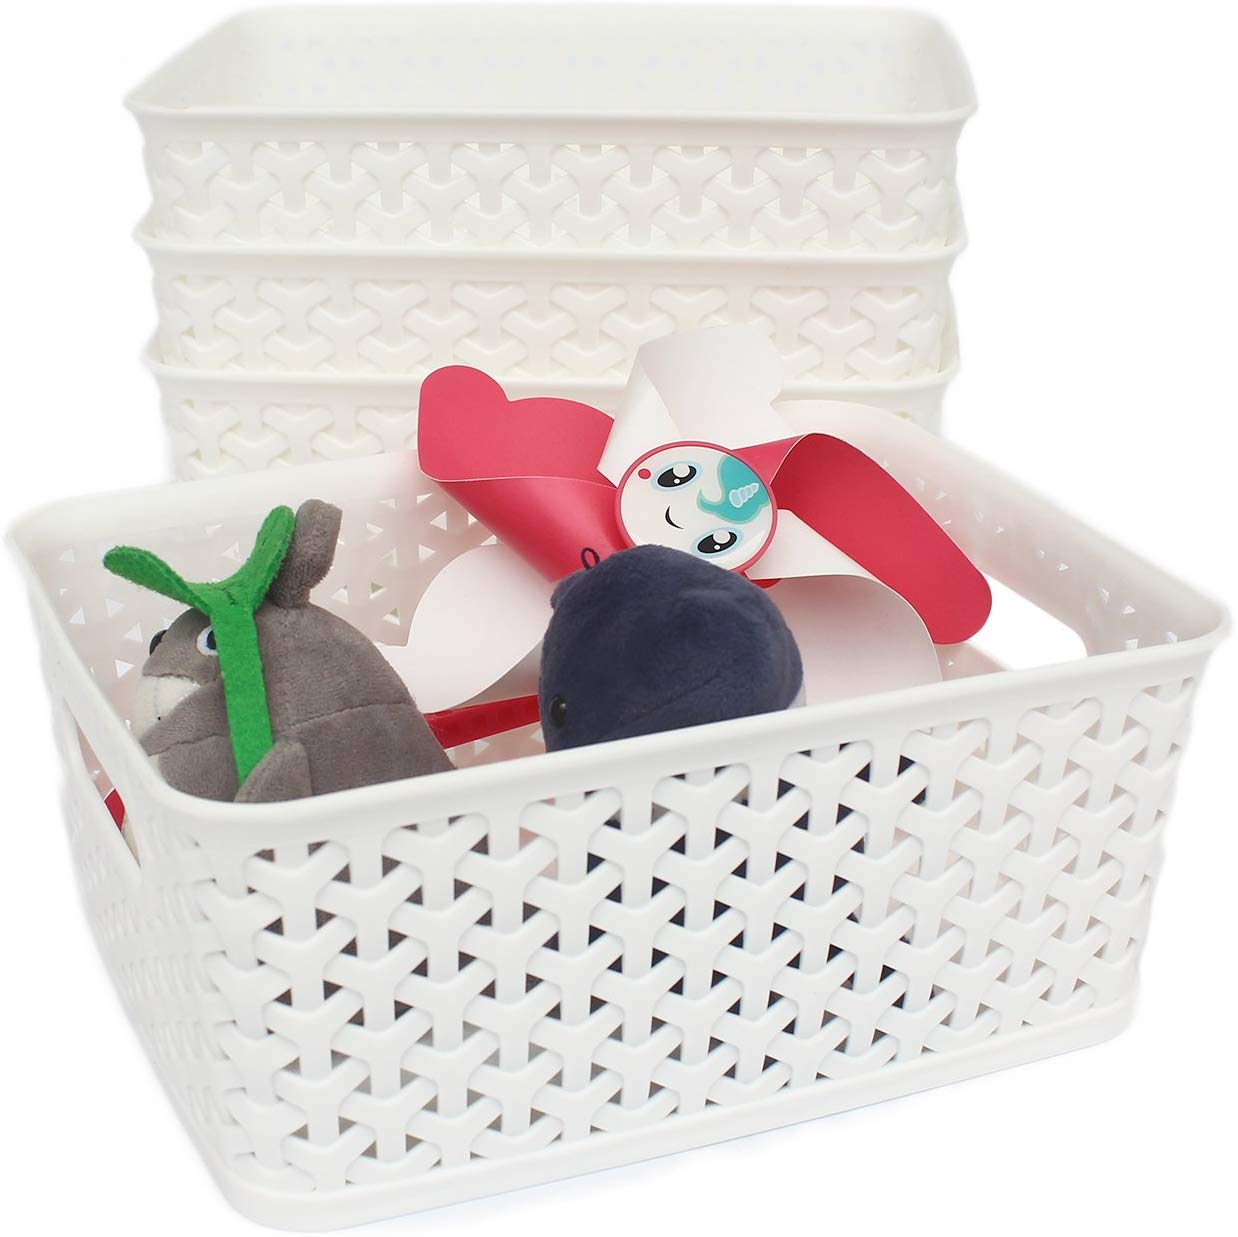 Plastic Storage Baskets & Bins